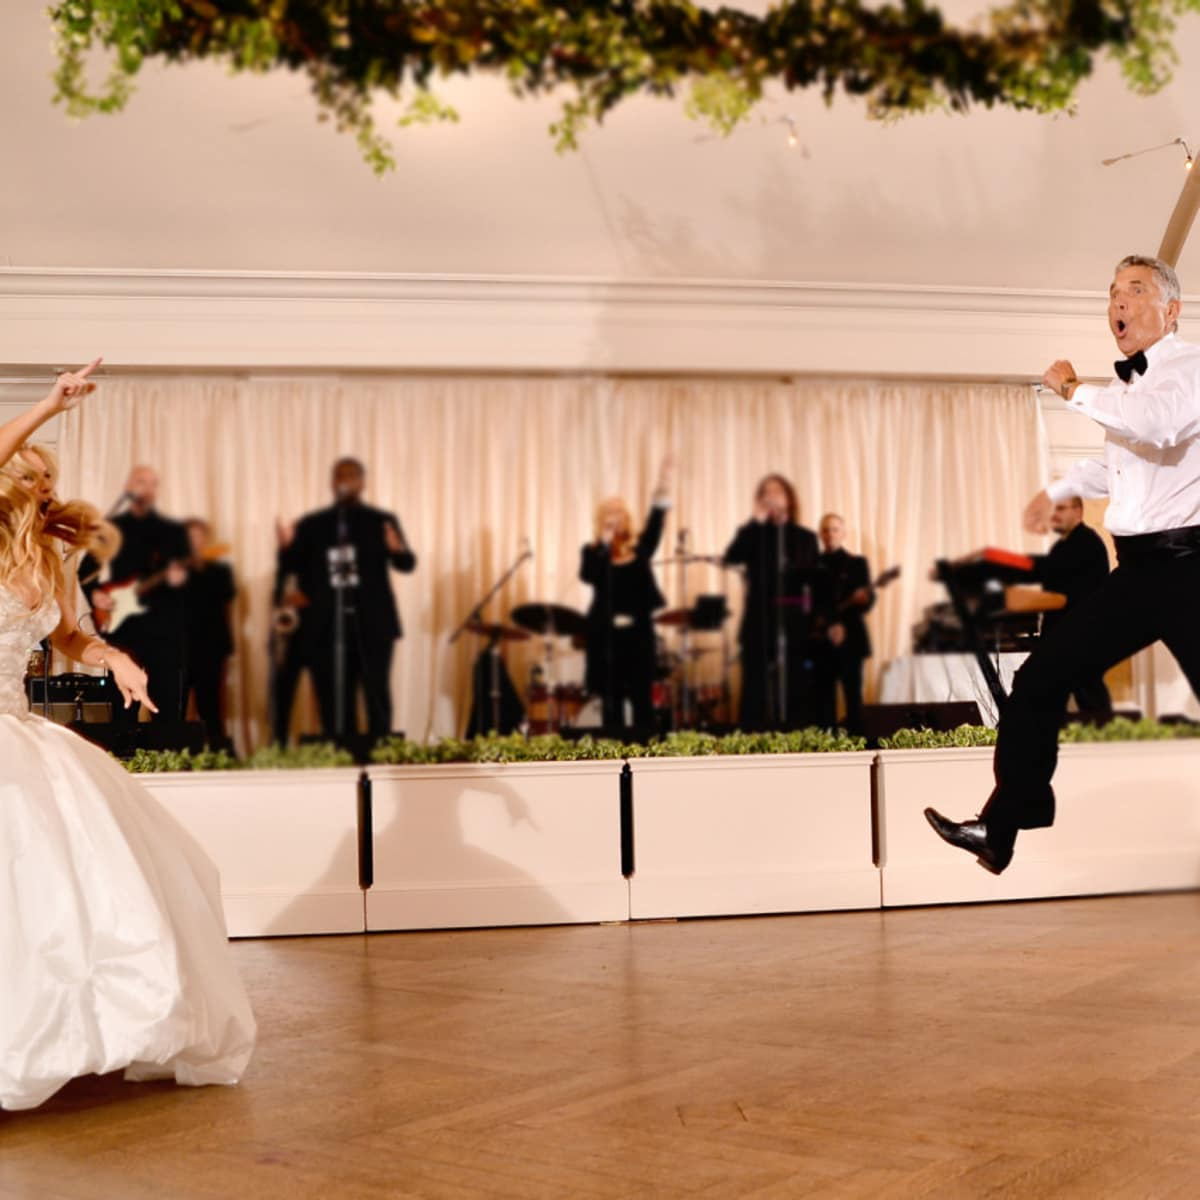 Houston, Chita Johnson wedding, June 2016, father-daughter dance